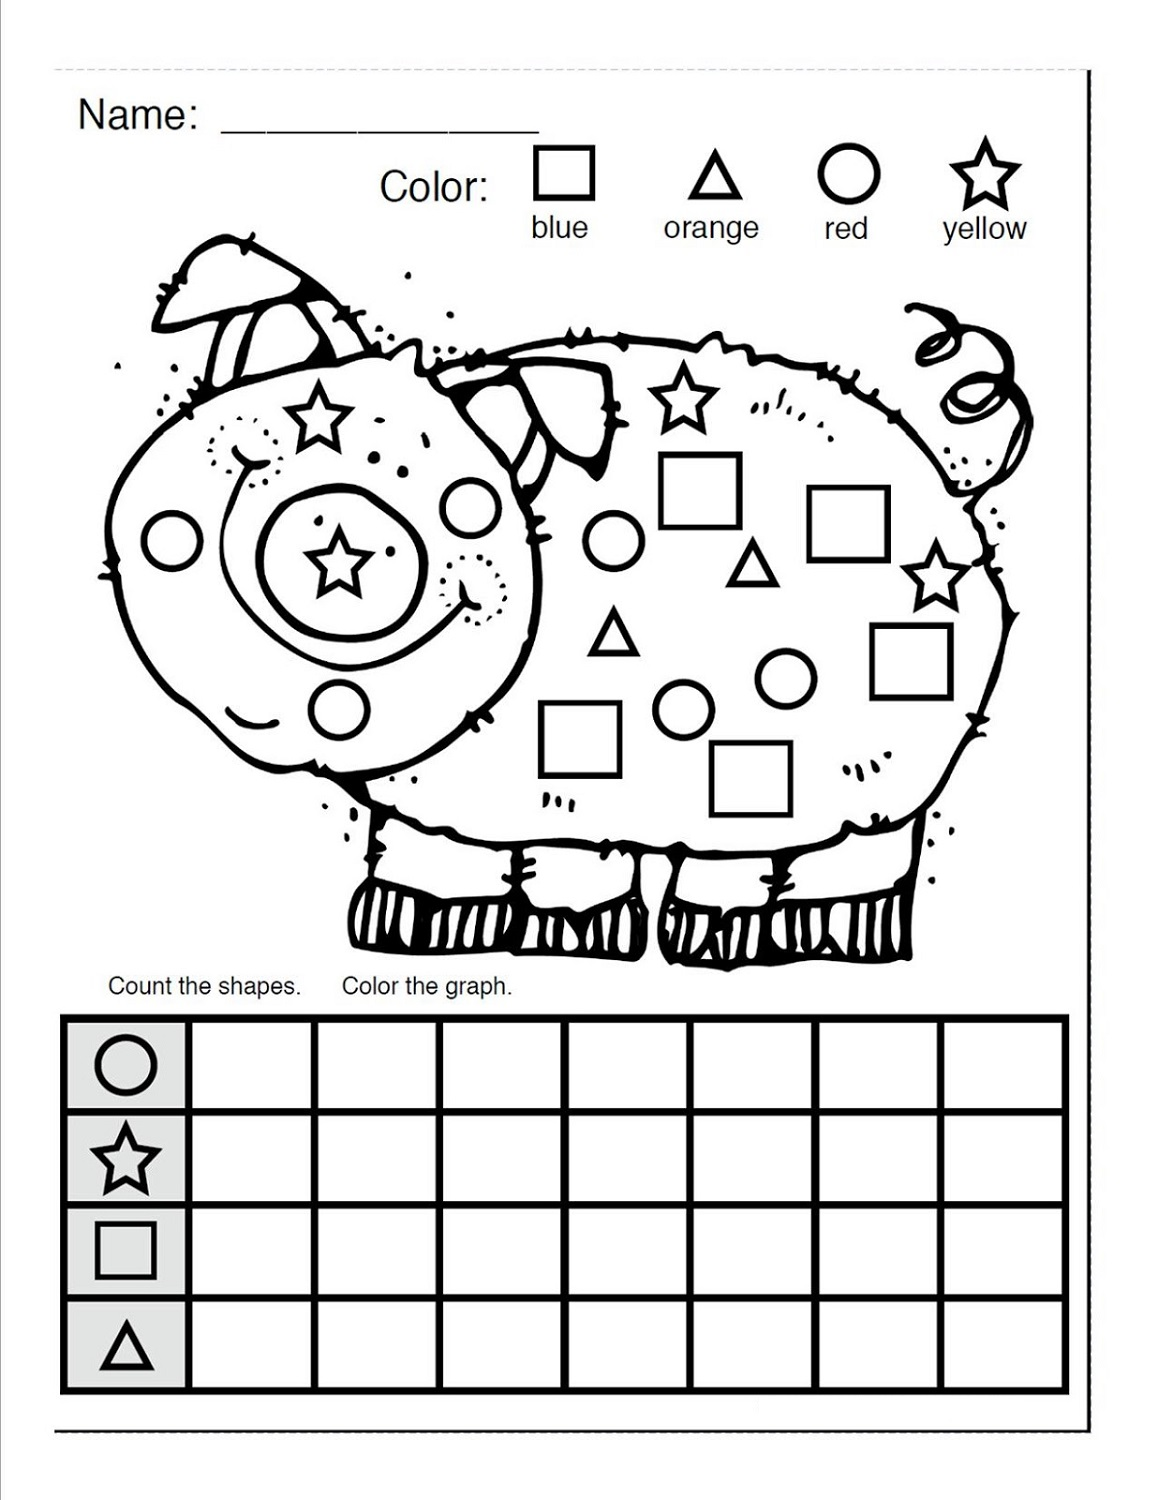 Sorting Shapes Worksheet And Color